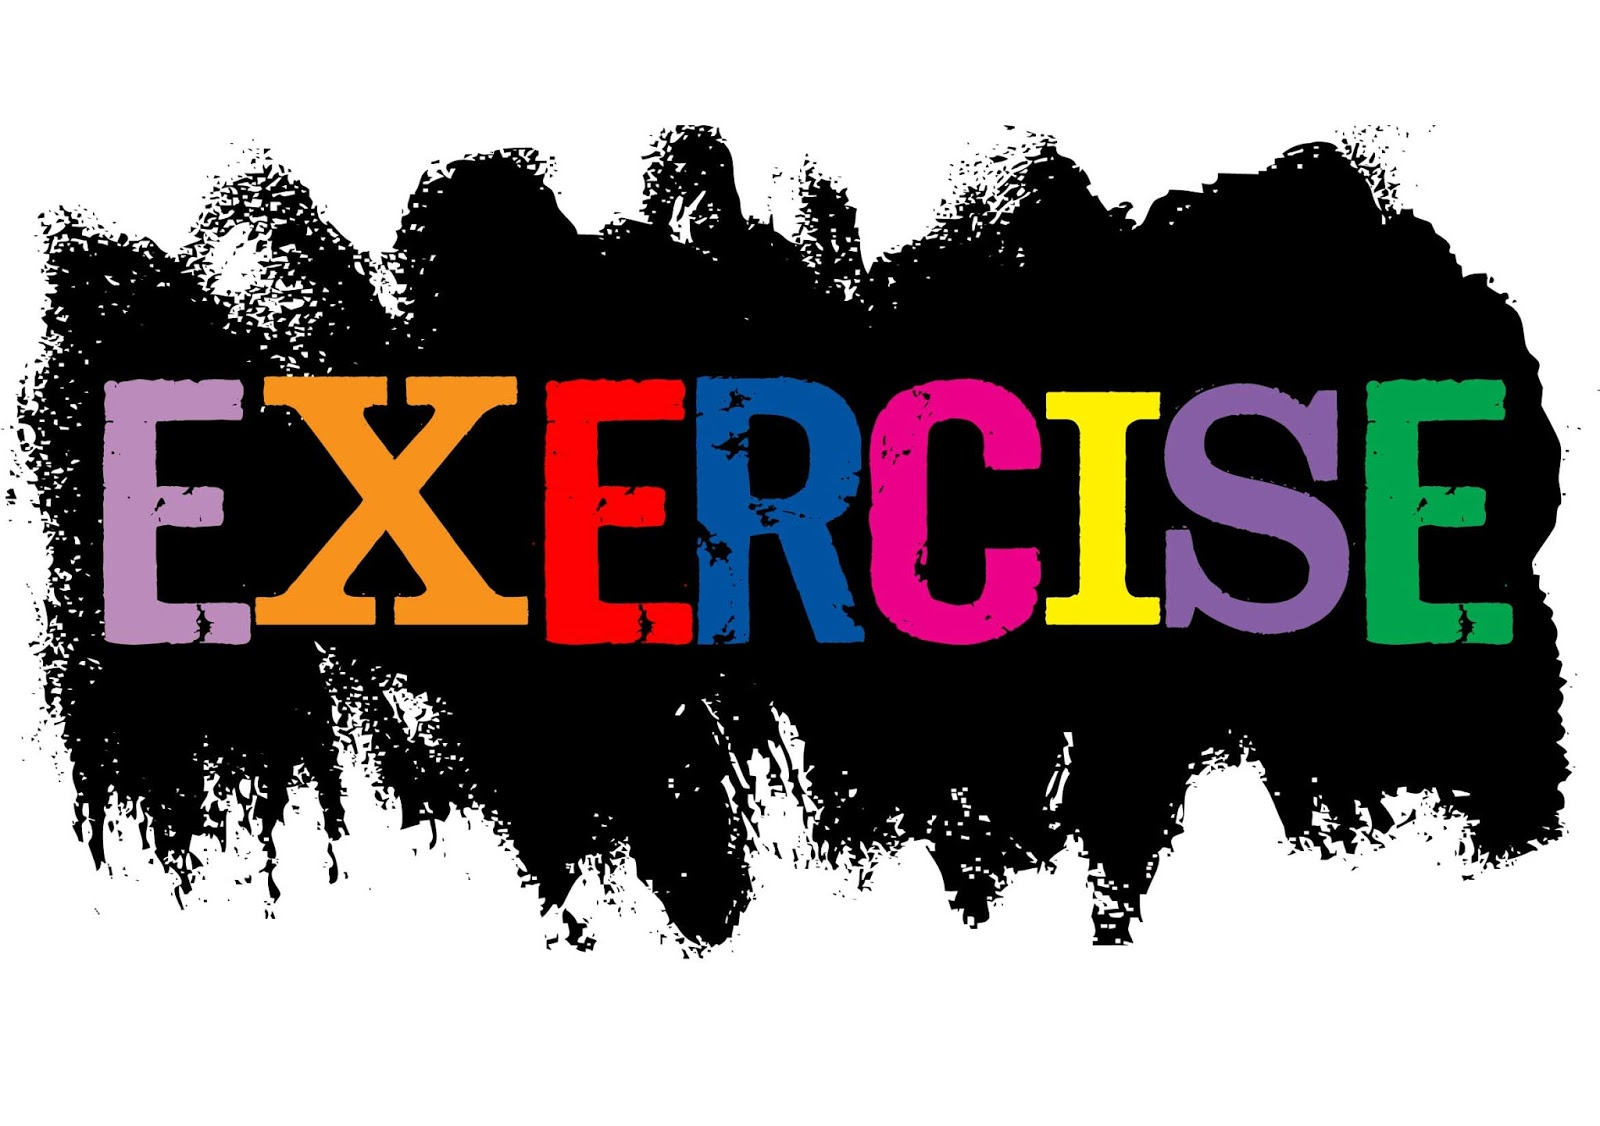 Essay On The Importance Of Exercise For Good Health Exercise. Exercise